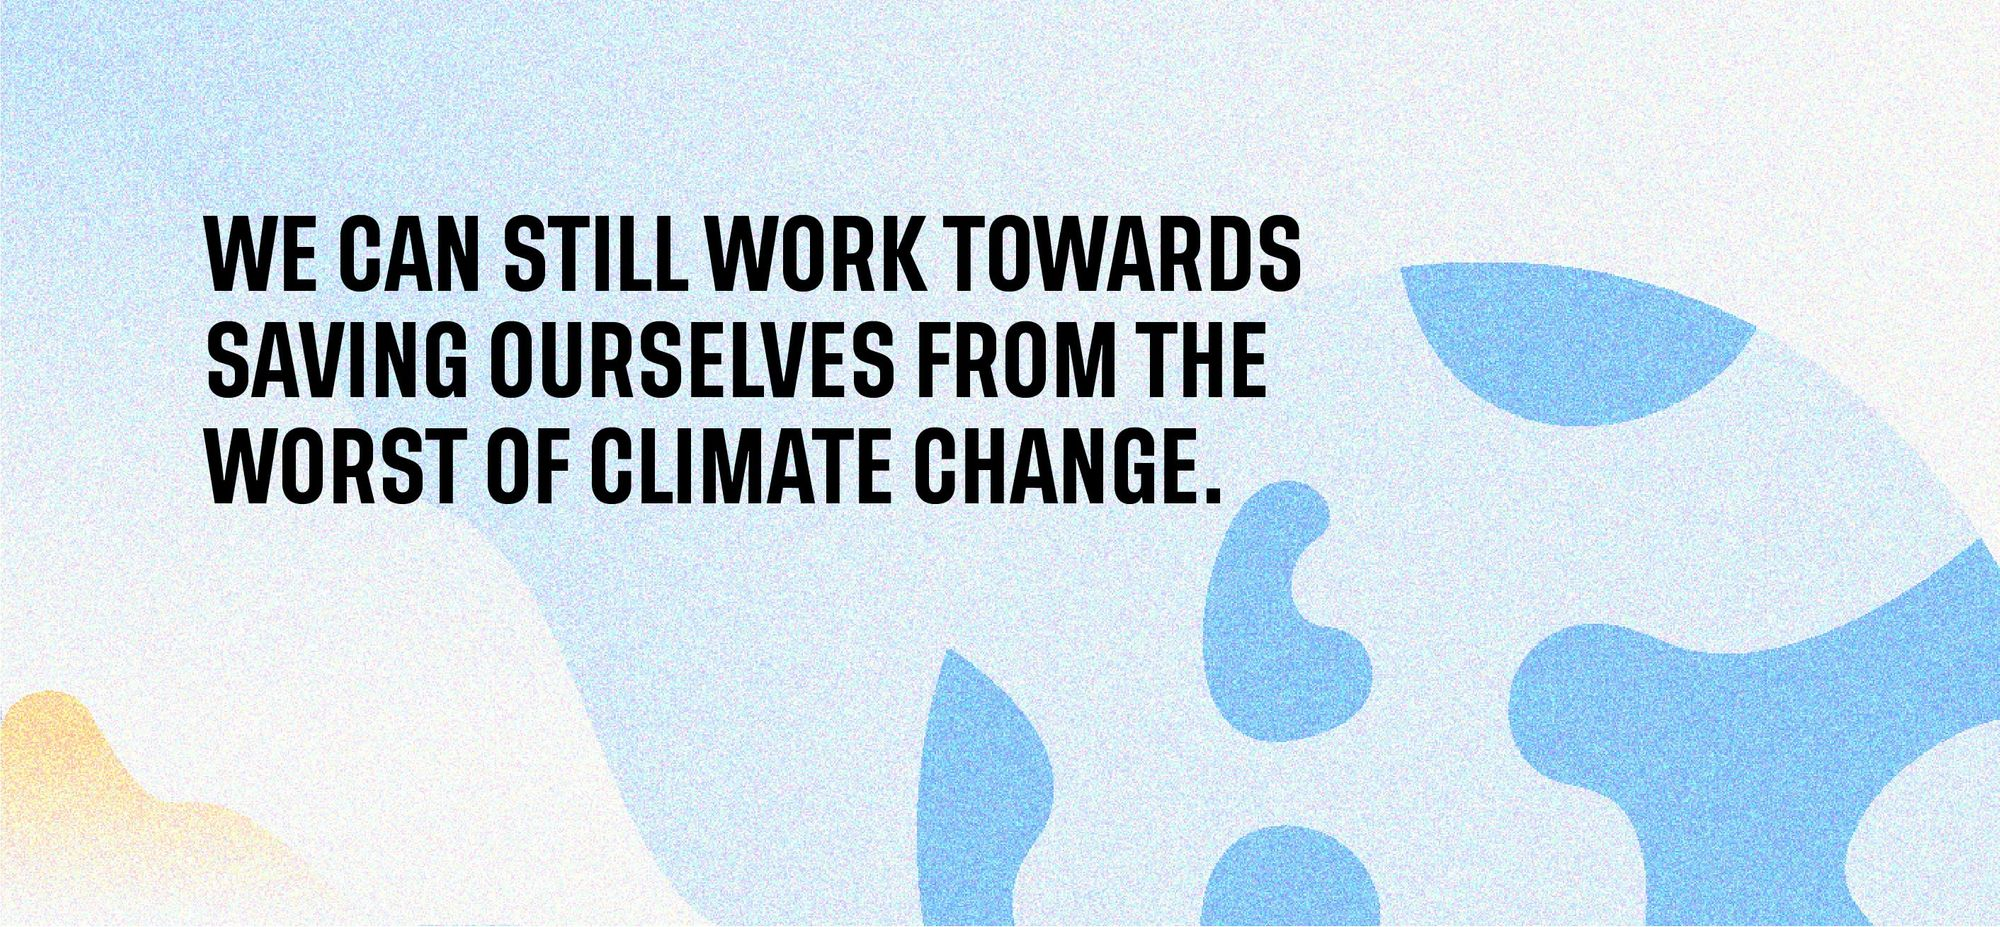 We can still work towards saving ourselves from the worst of climate change.